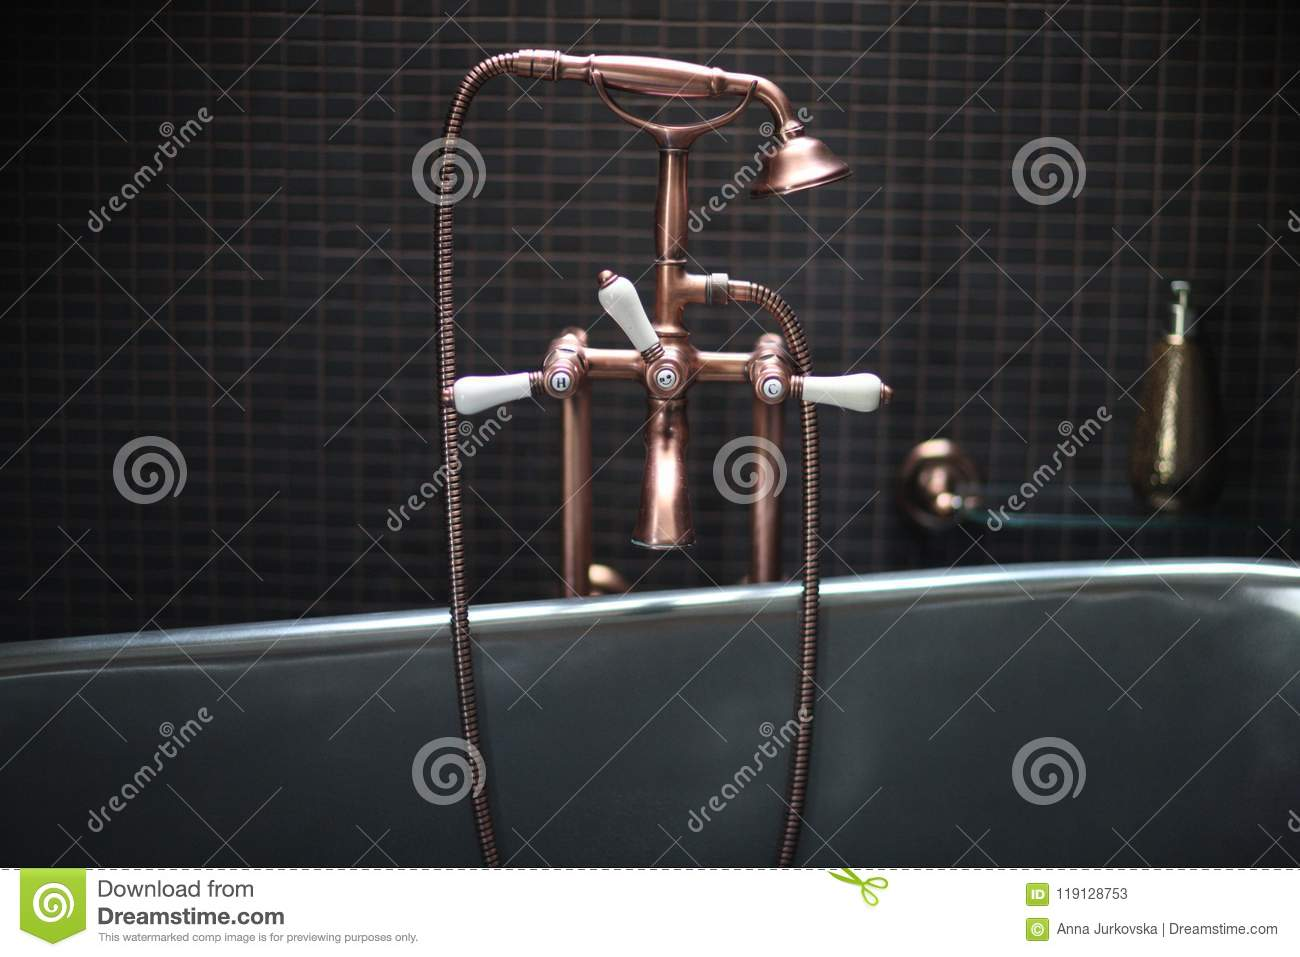 Copper Faucet Mixer With Porcelain Handles Stock Image - Image of ...